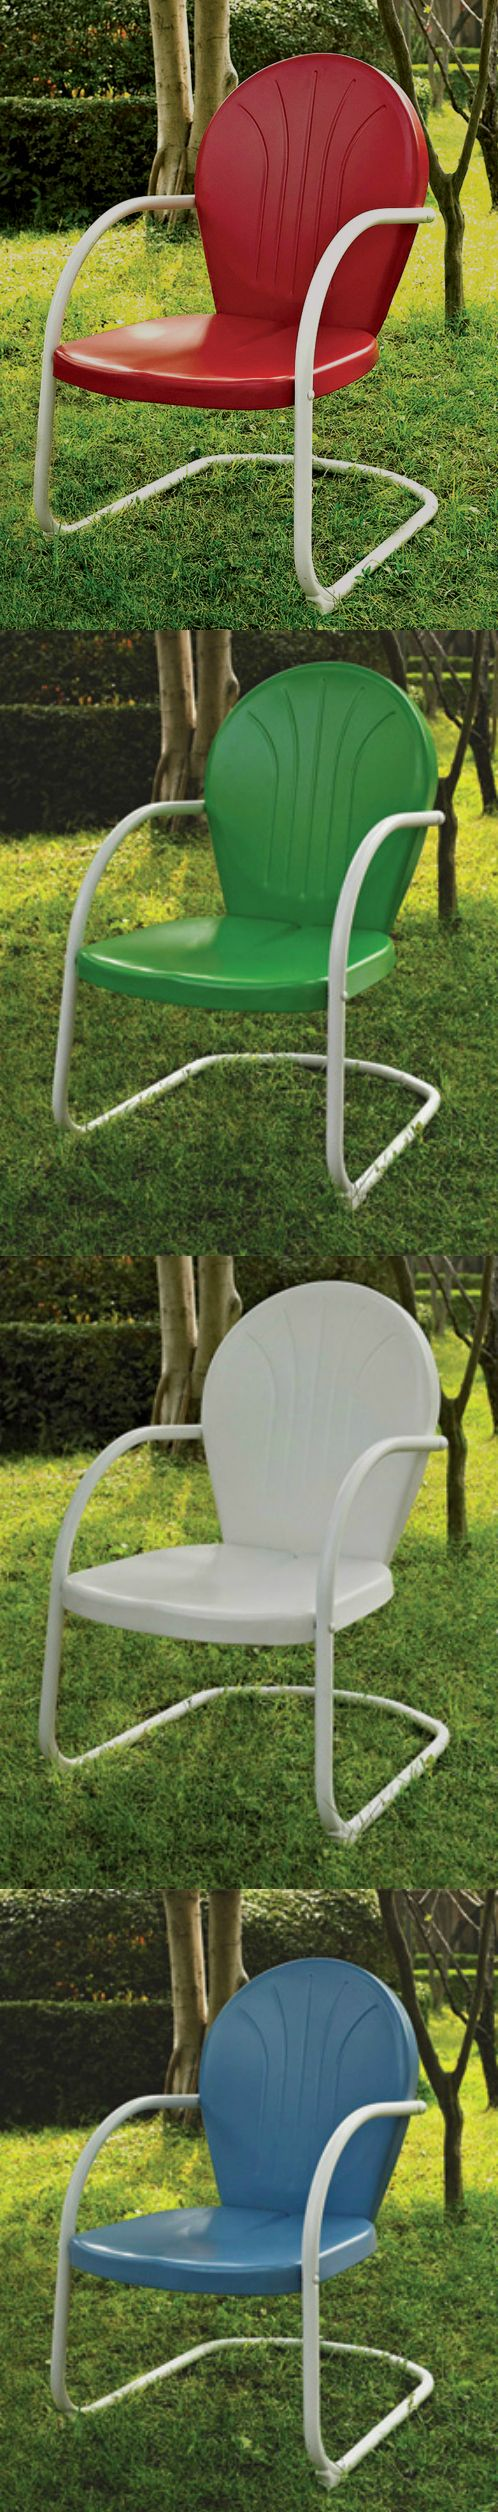 Butterfly metal chair - Metal Outdoor Chair What Was Once Modern Becomes Retro